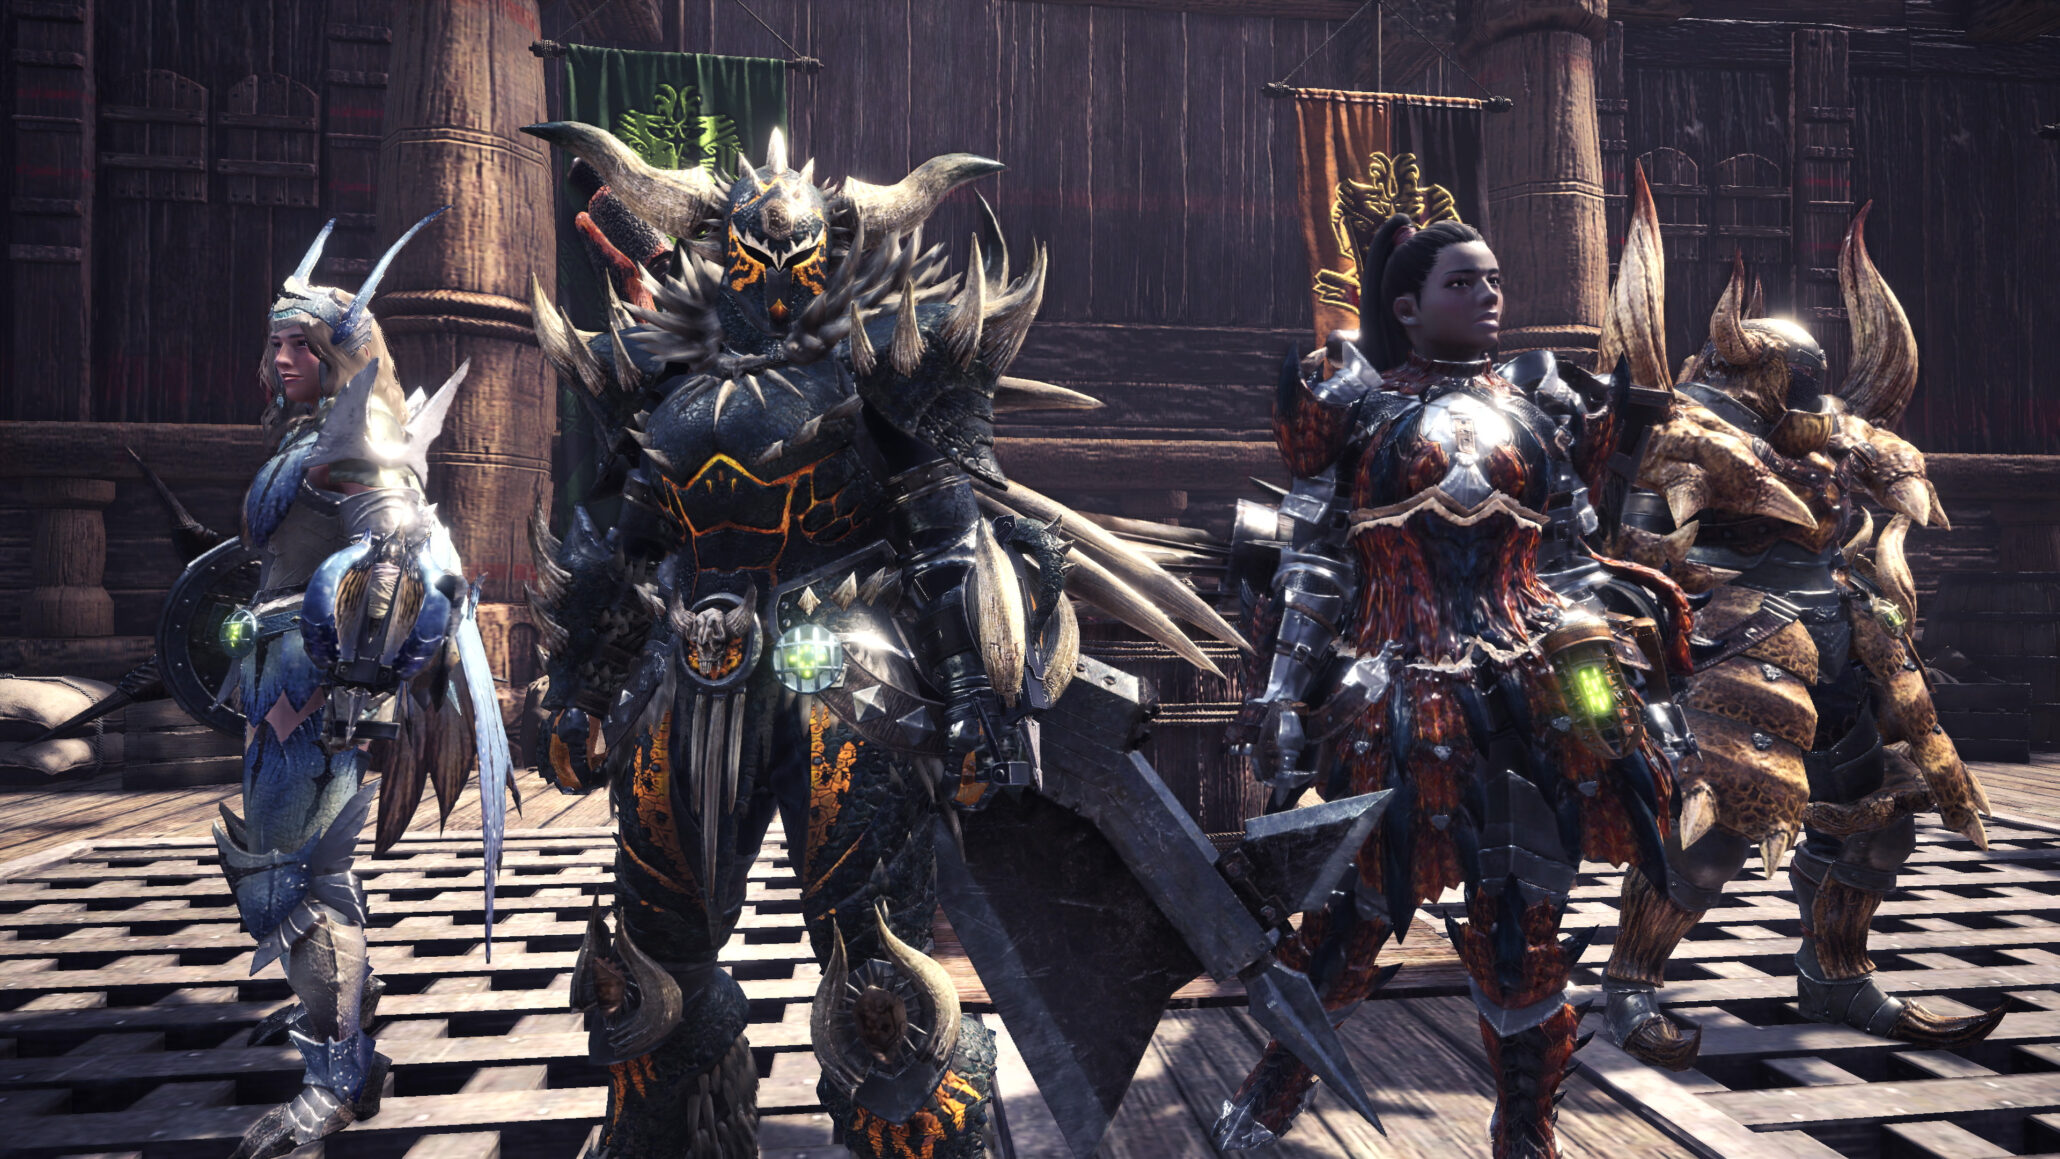 New PC Monster Hunter World Transmog Mod Offers Armor